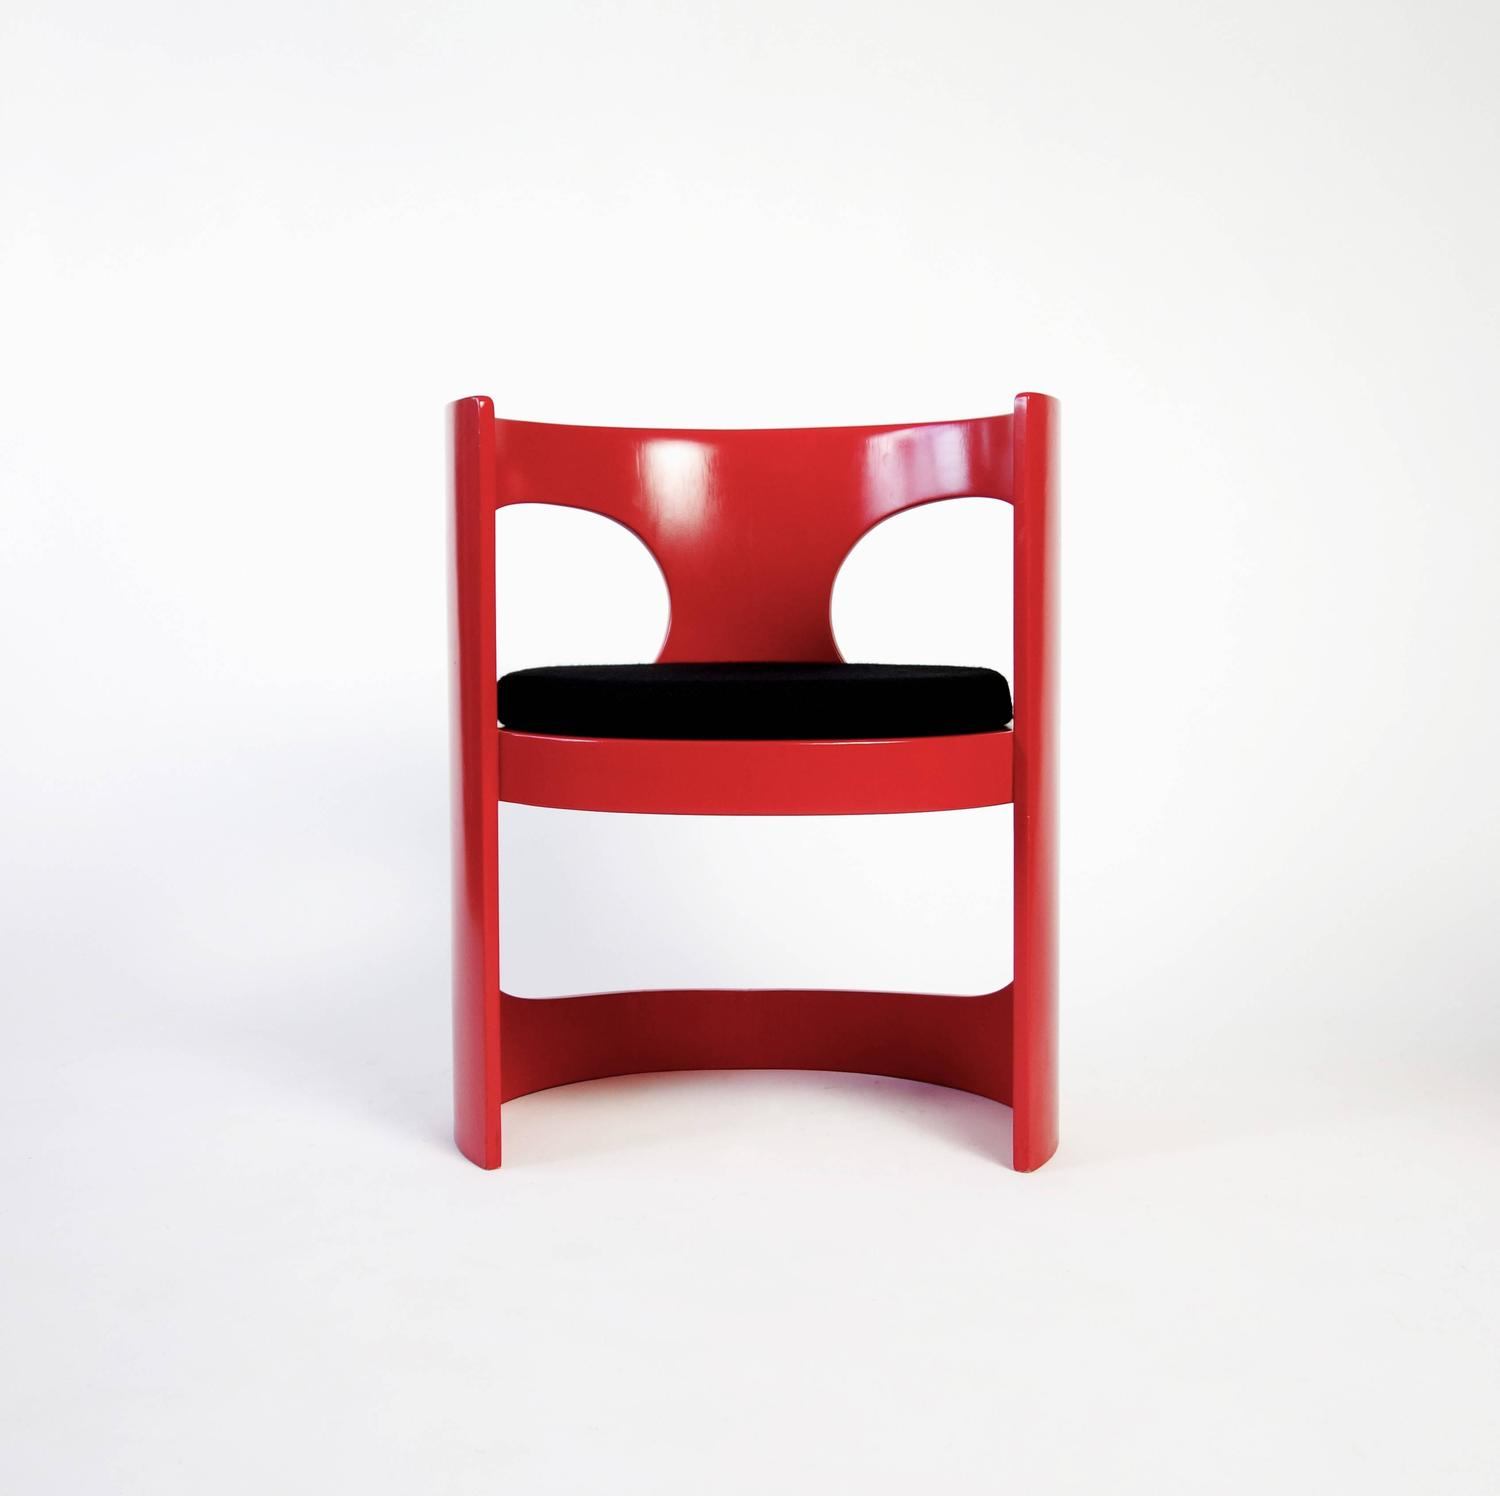 pre tables and chairs spinning wheel chair pair of arne jacobsen quotpre pop quot for sale at 1stdibs